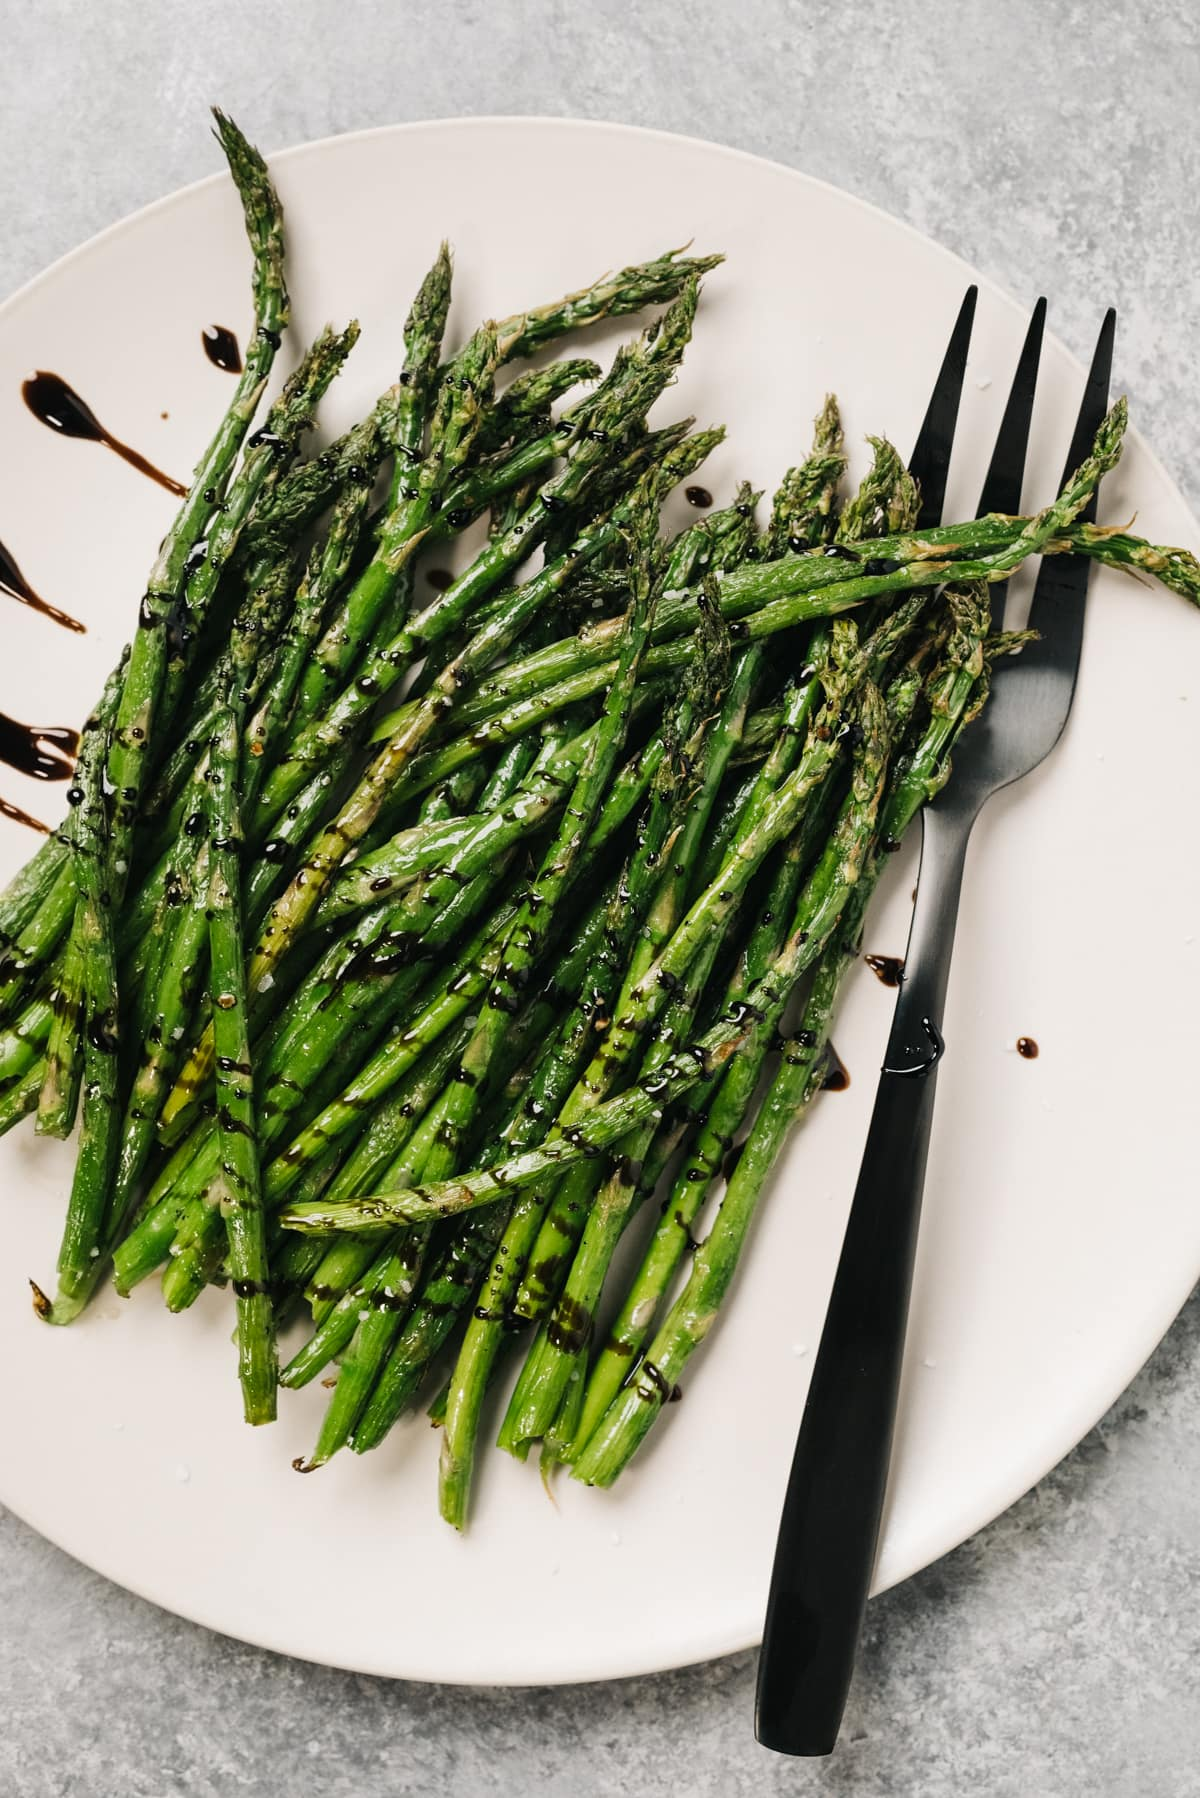 Cooked asparagus spears on a white platter, drizzled with balsamic reduction, with a black serving fork.